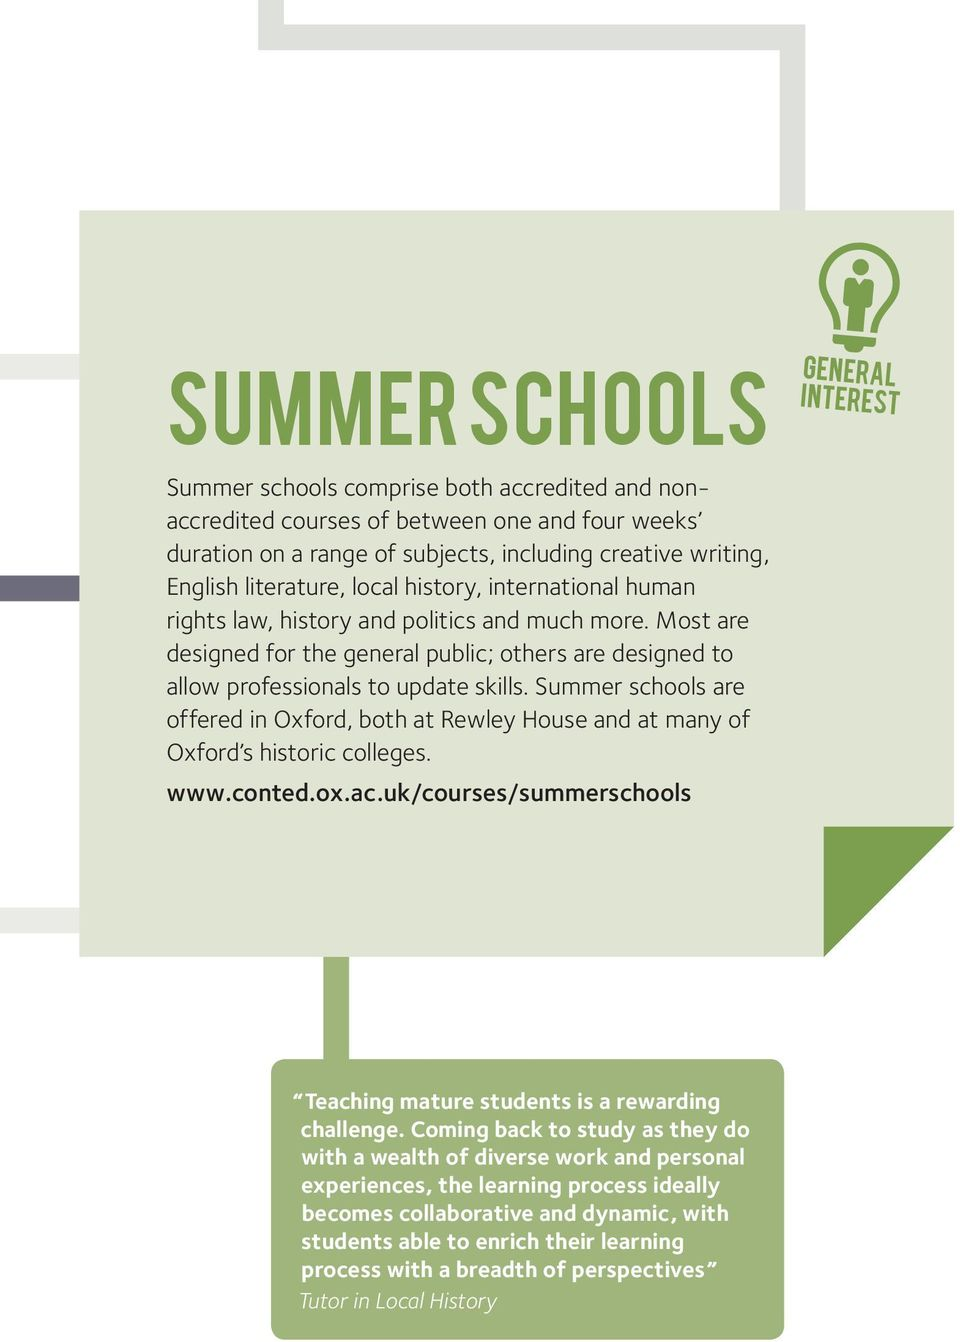 Summer schools are offered in Oxford, both at Rewley House and at many of Oxford s historic colleges. www.conted.ox.ac.